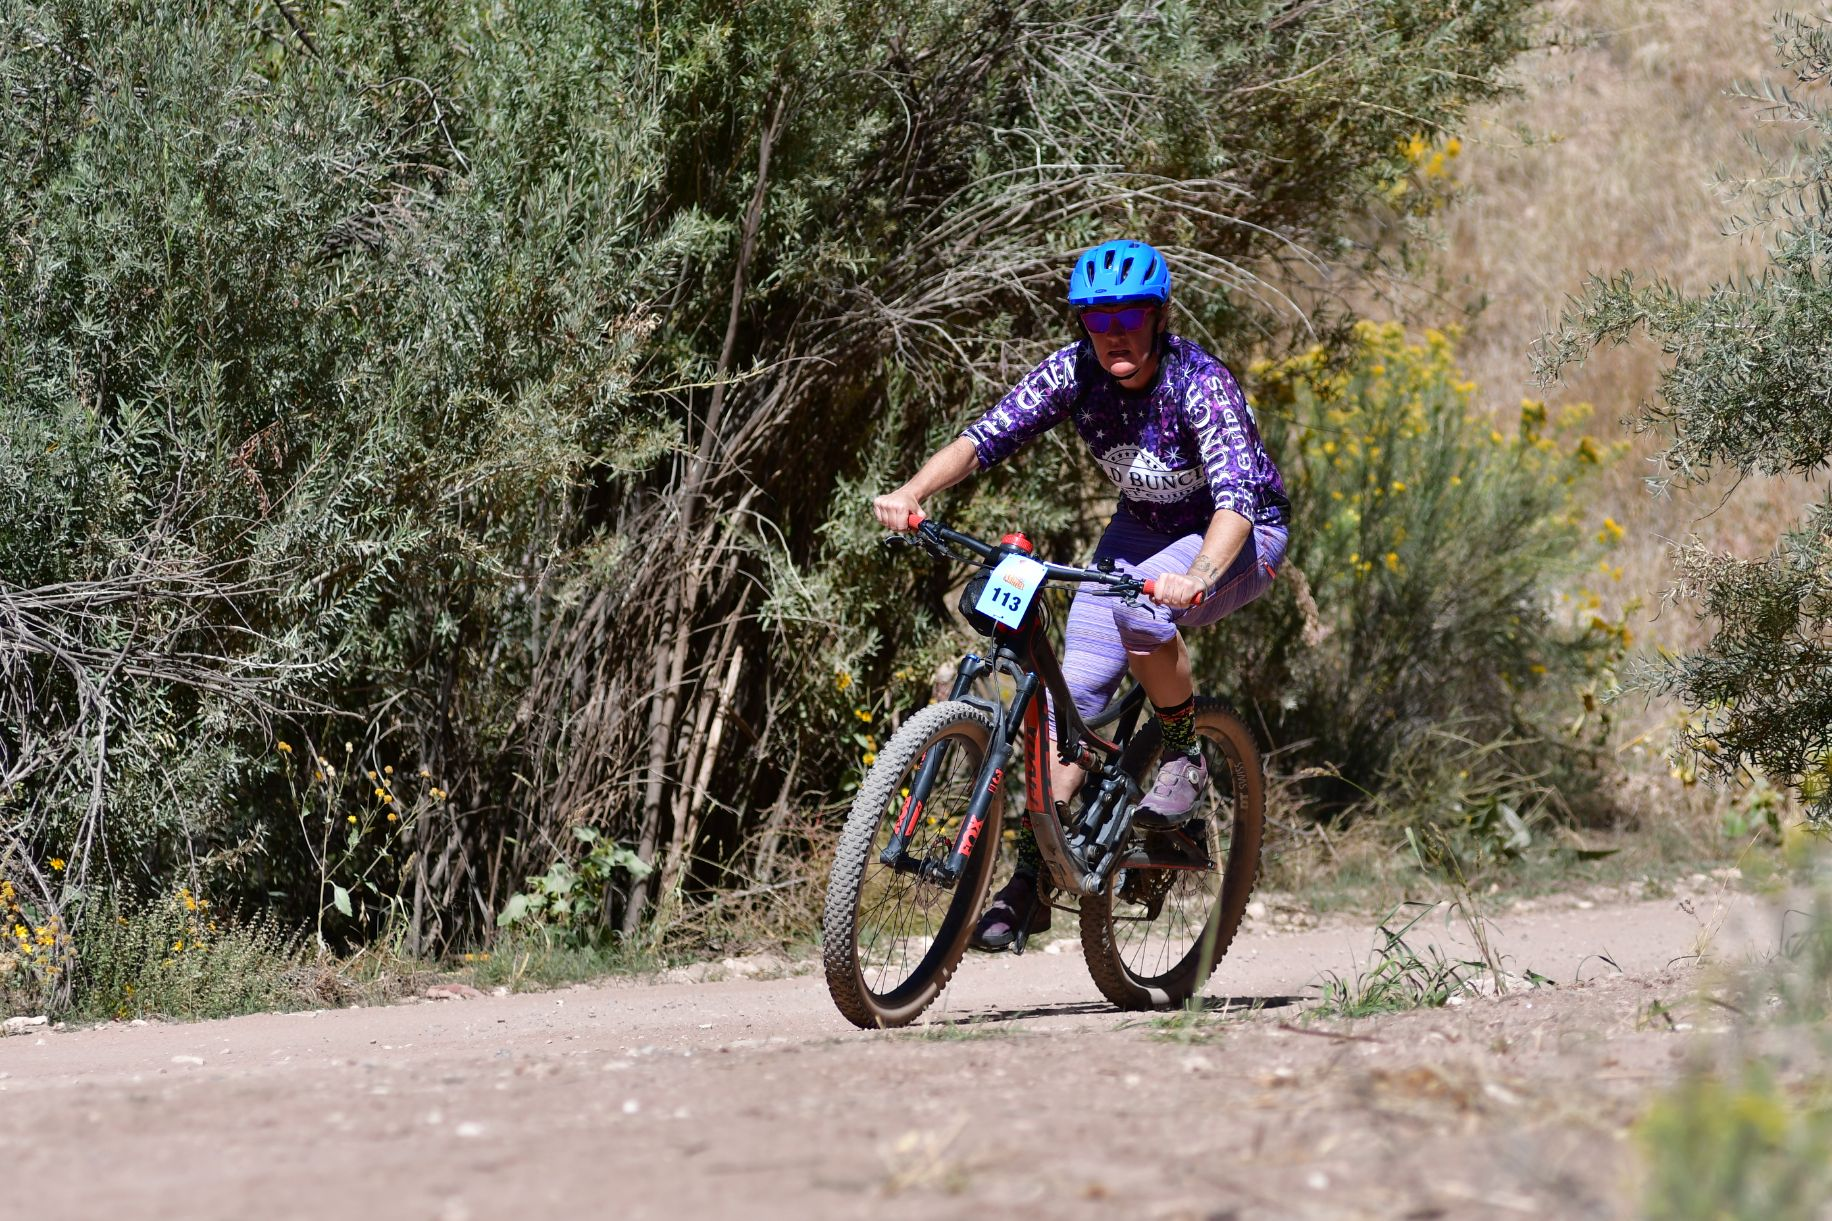 Laurel Darren comes flying around a turn during the Canon City Crippler mountain bike race Sept. 25 in Colorado.